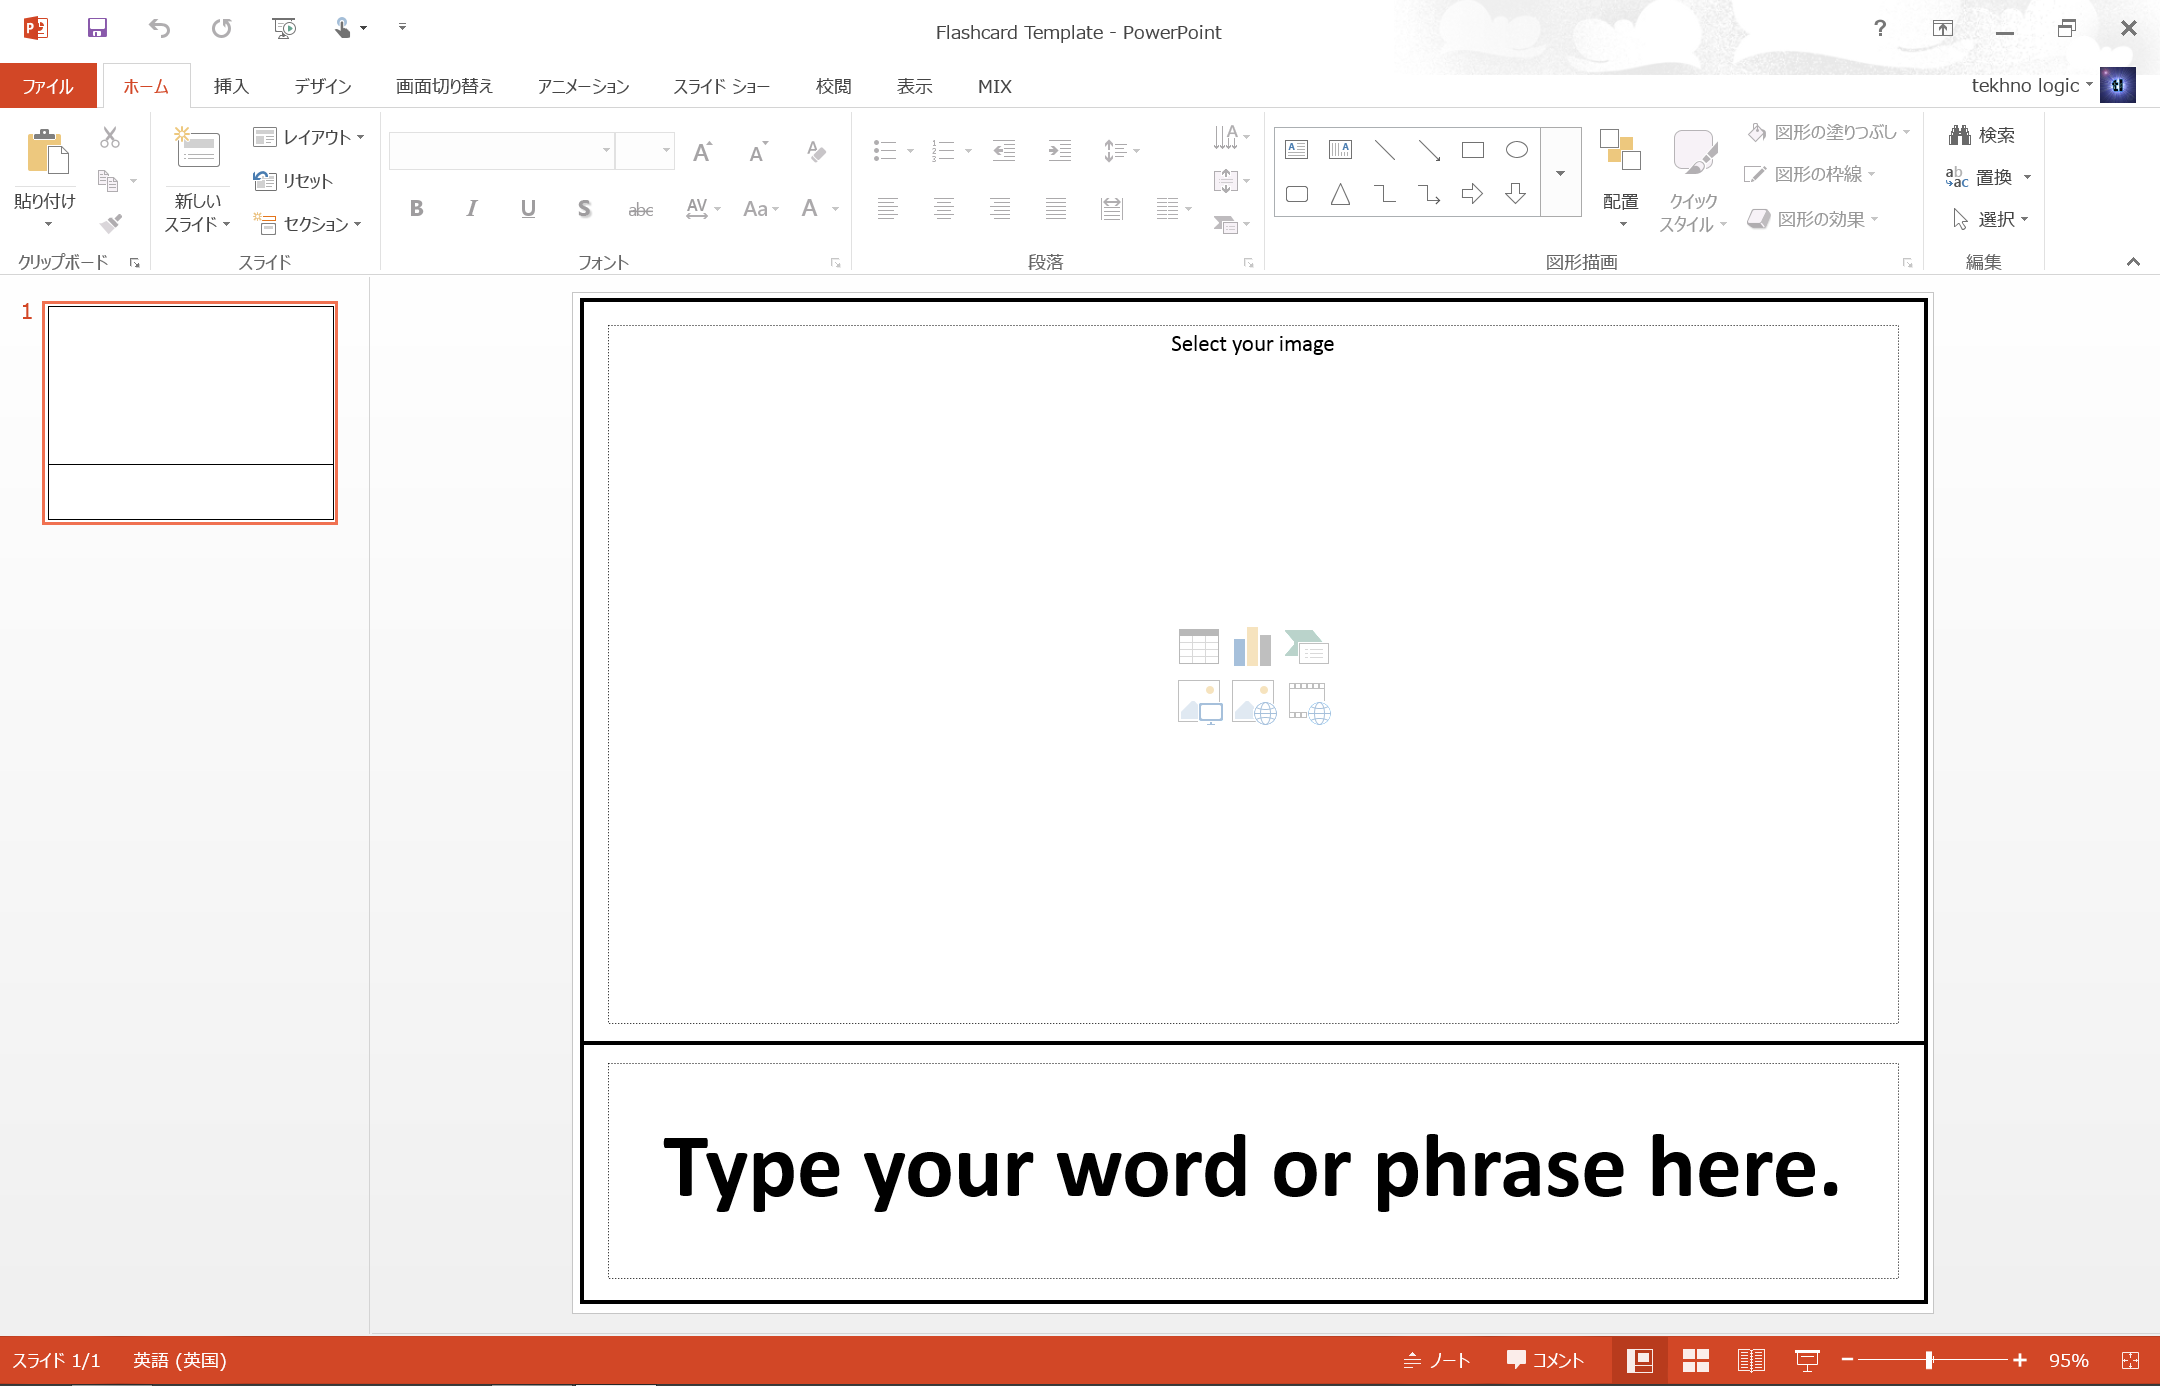 microsoft word flash card template